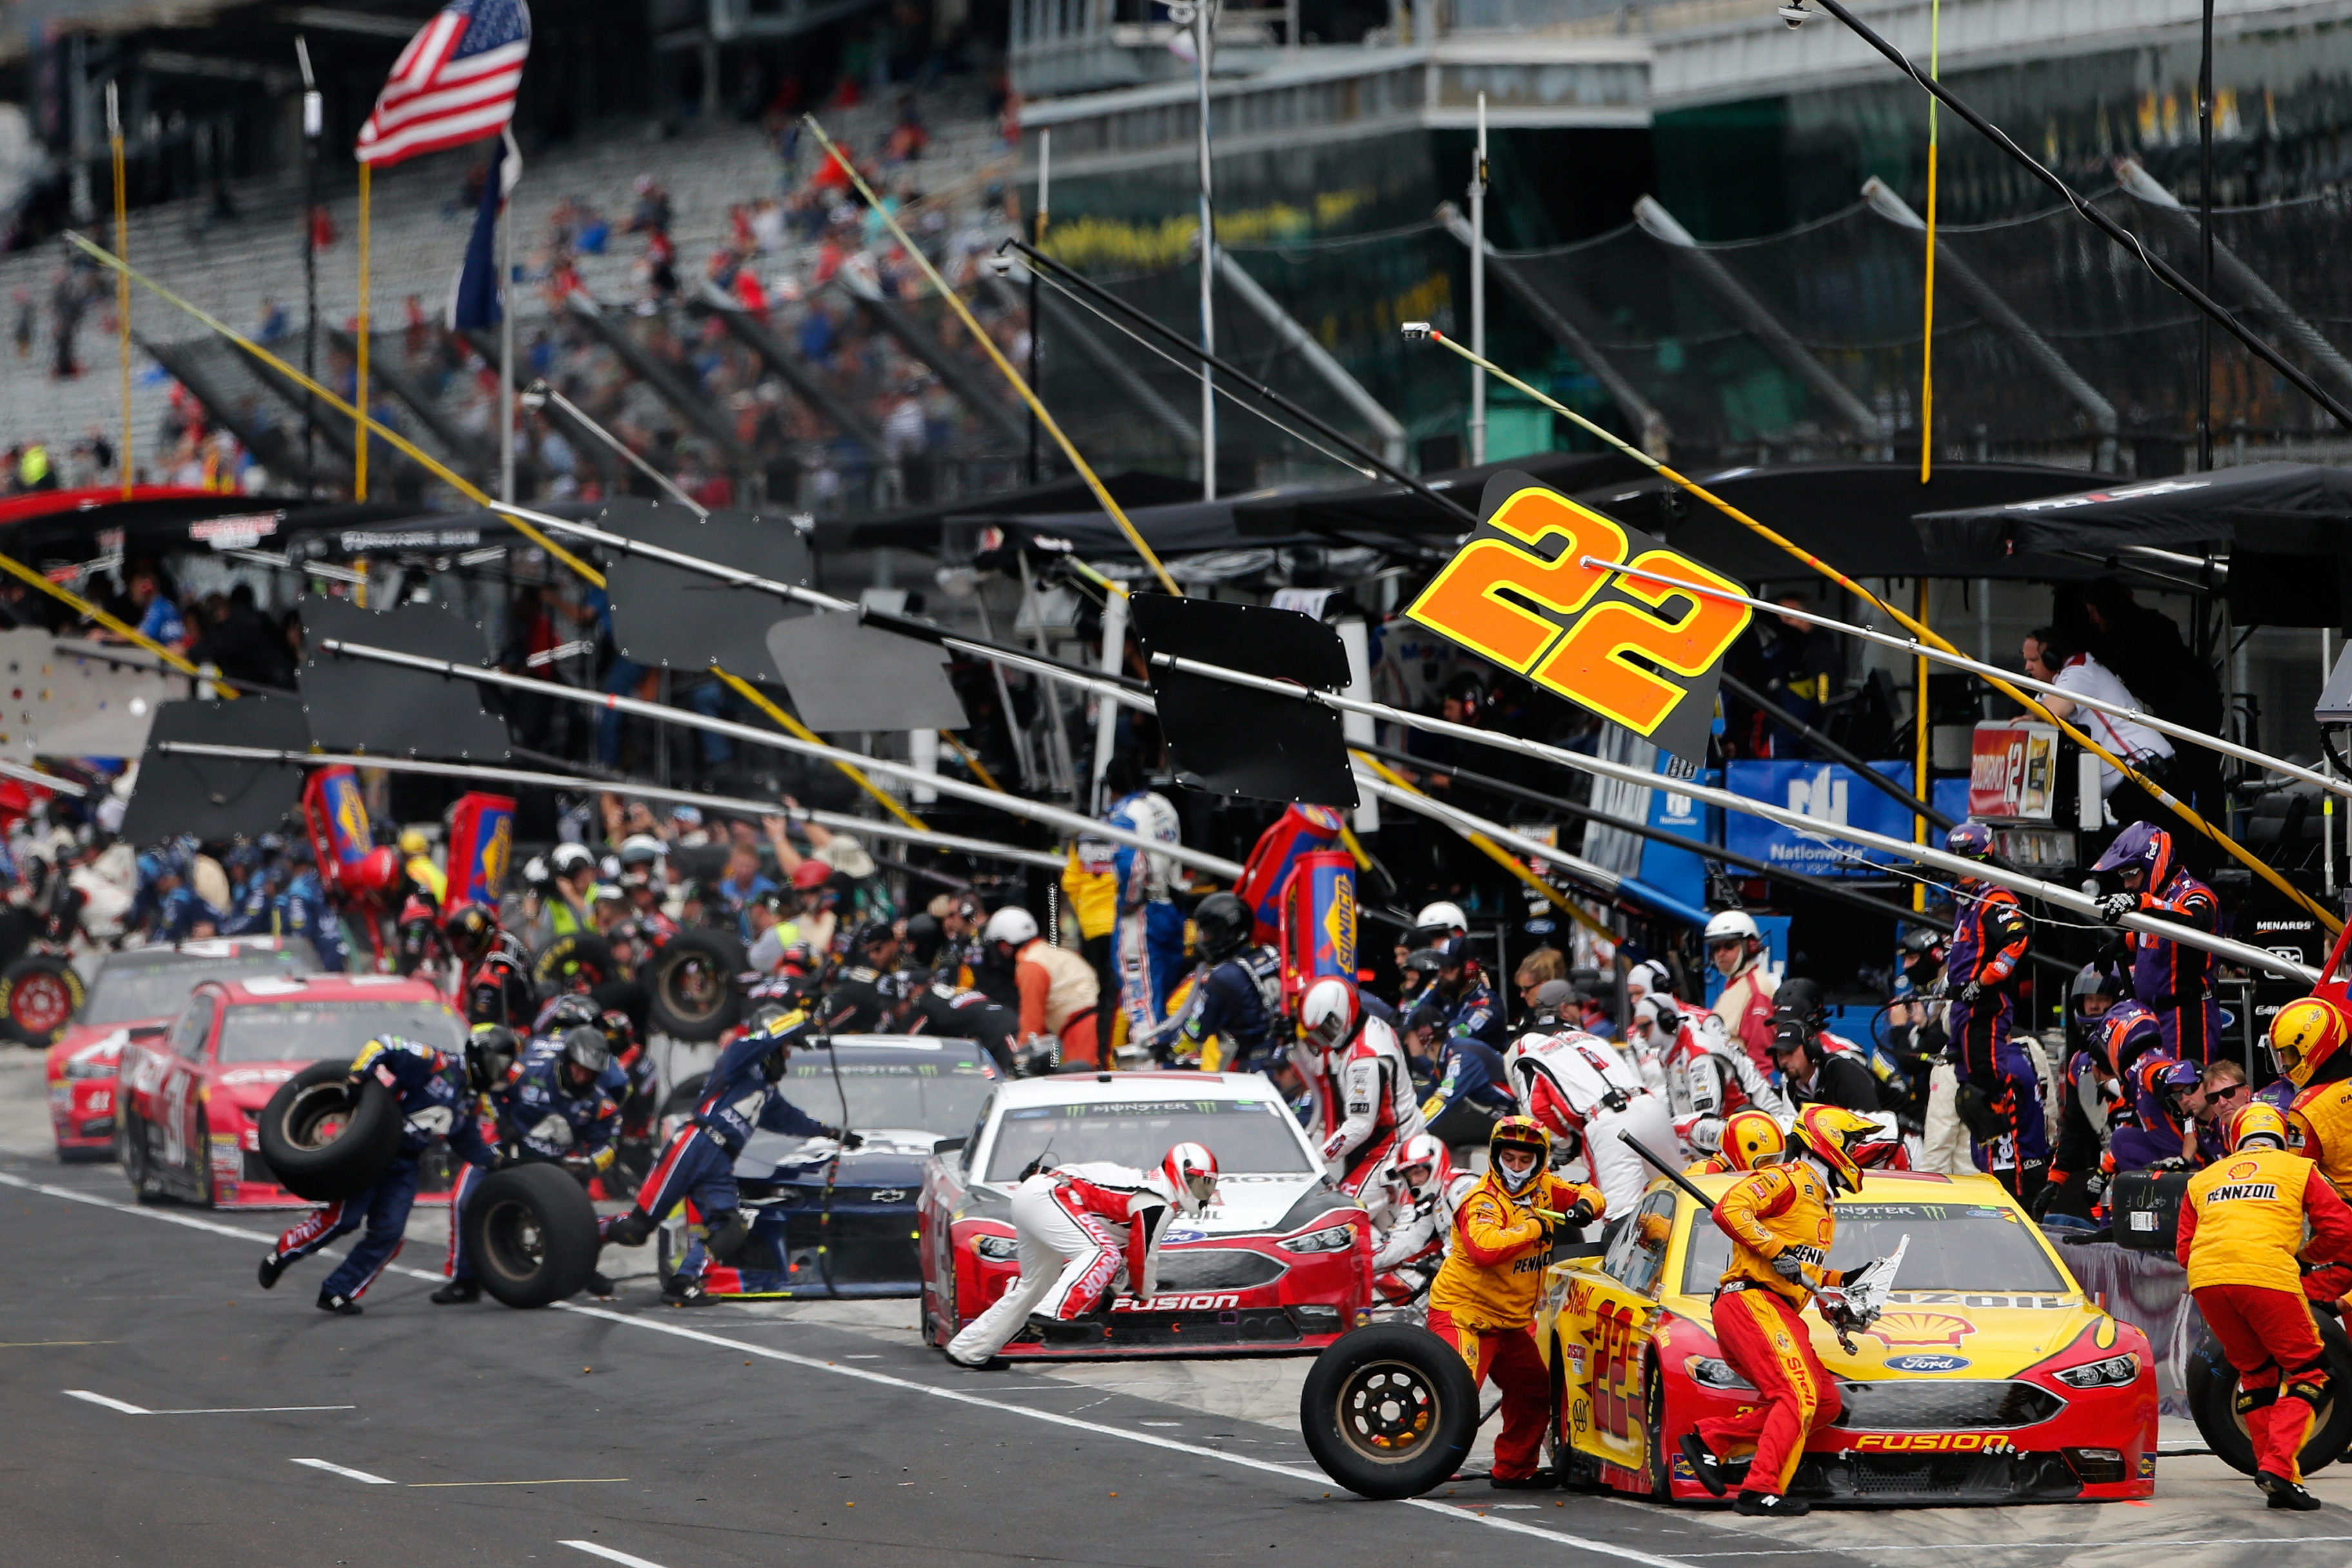 NASCAR pit stops at Indianapolis Motor Speedway